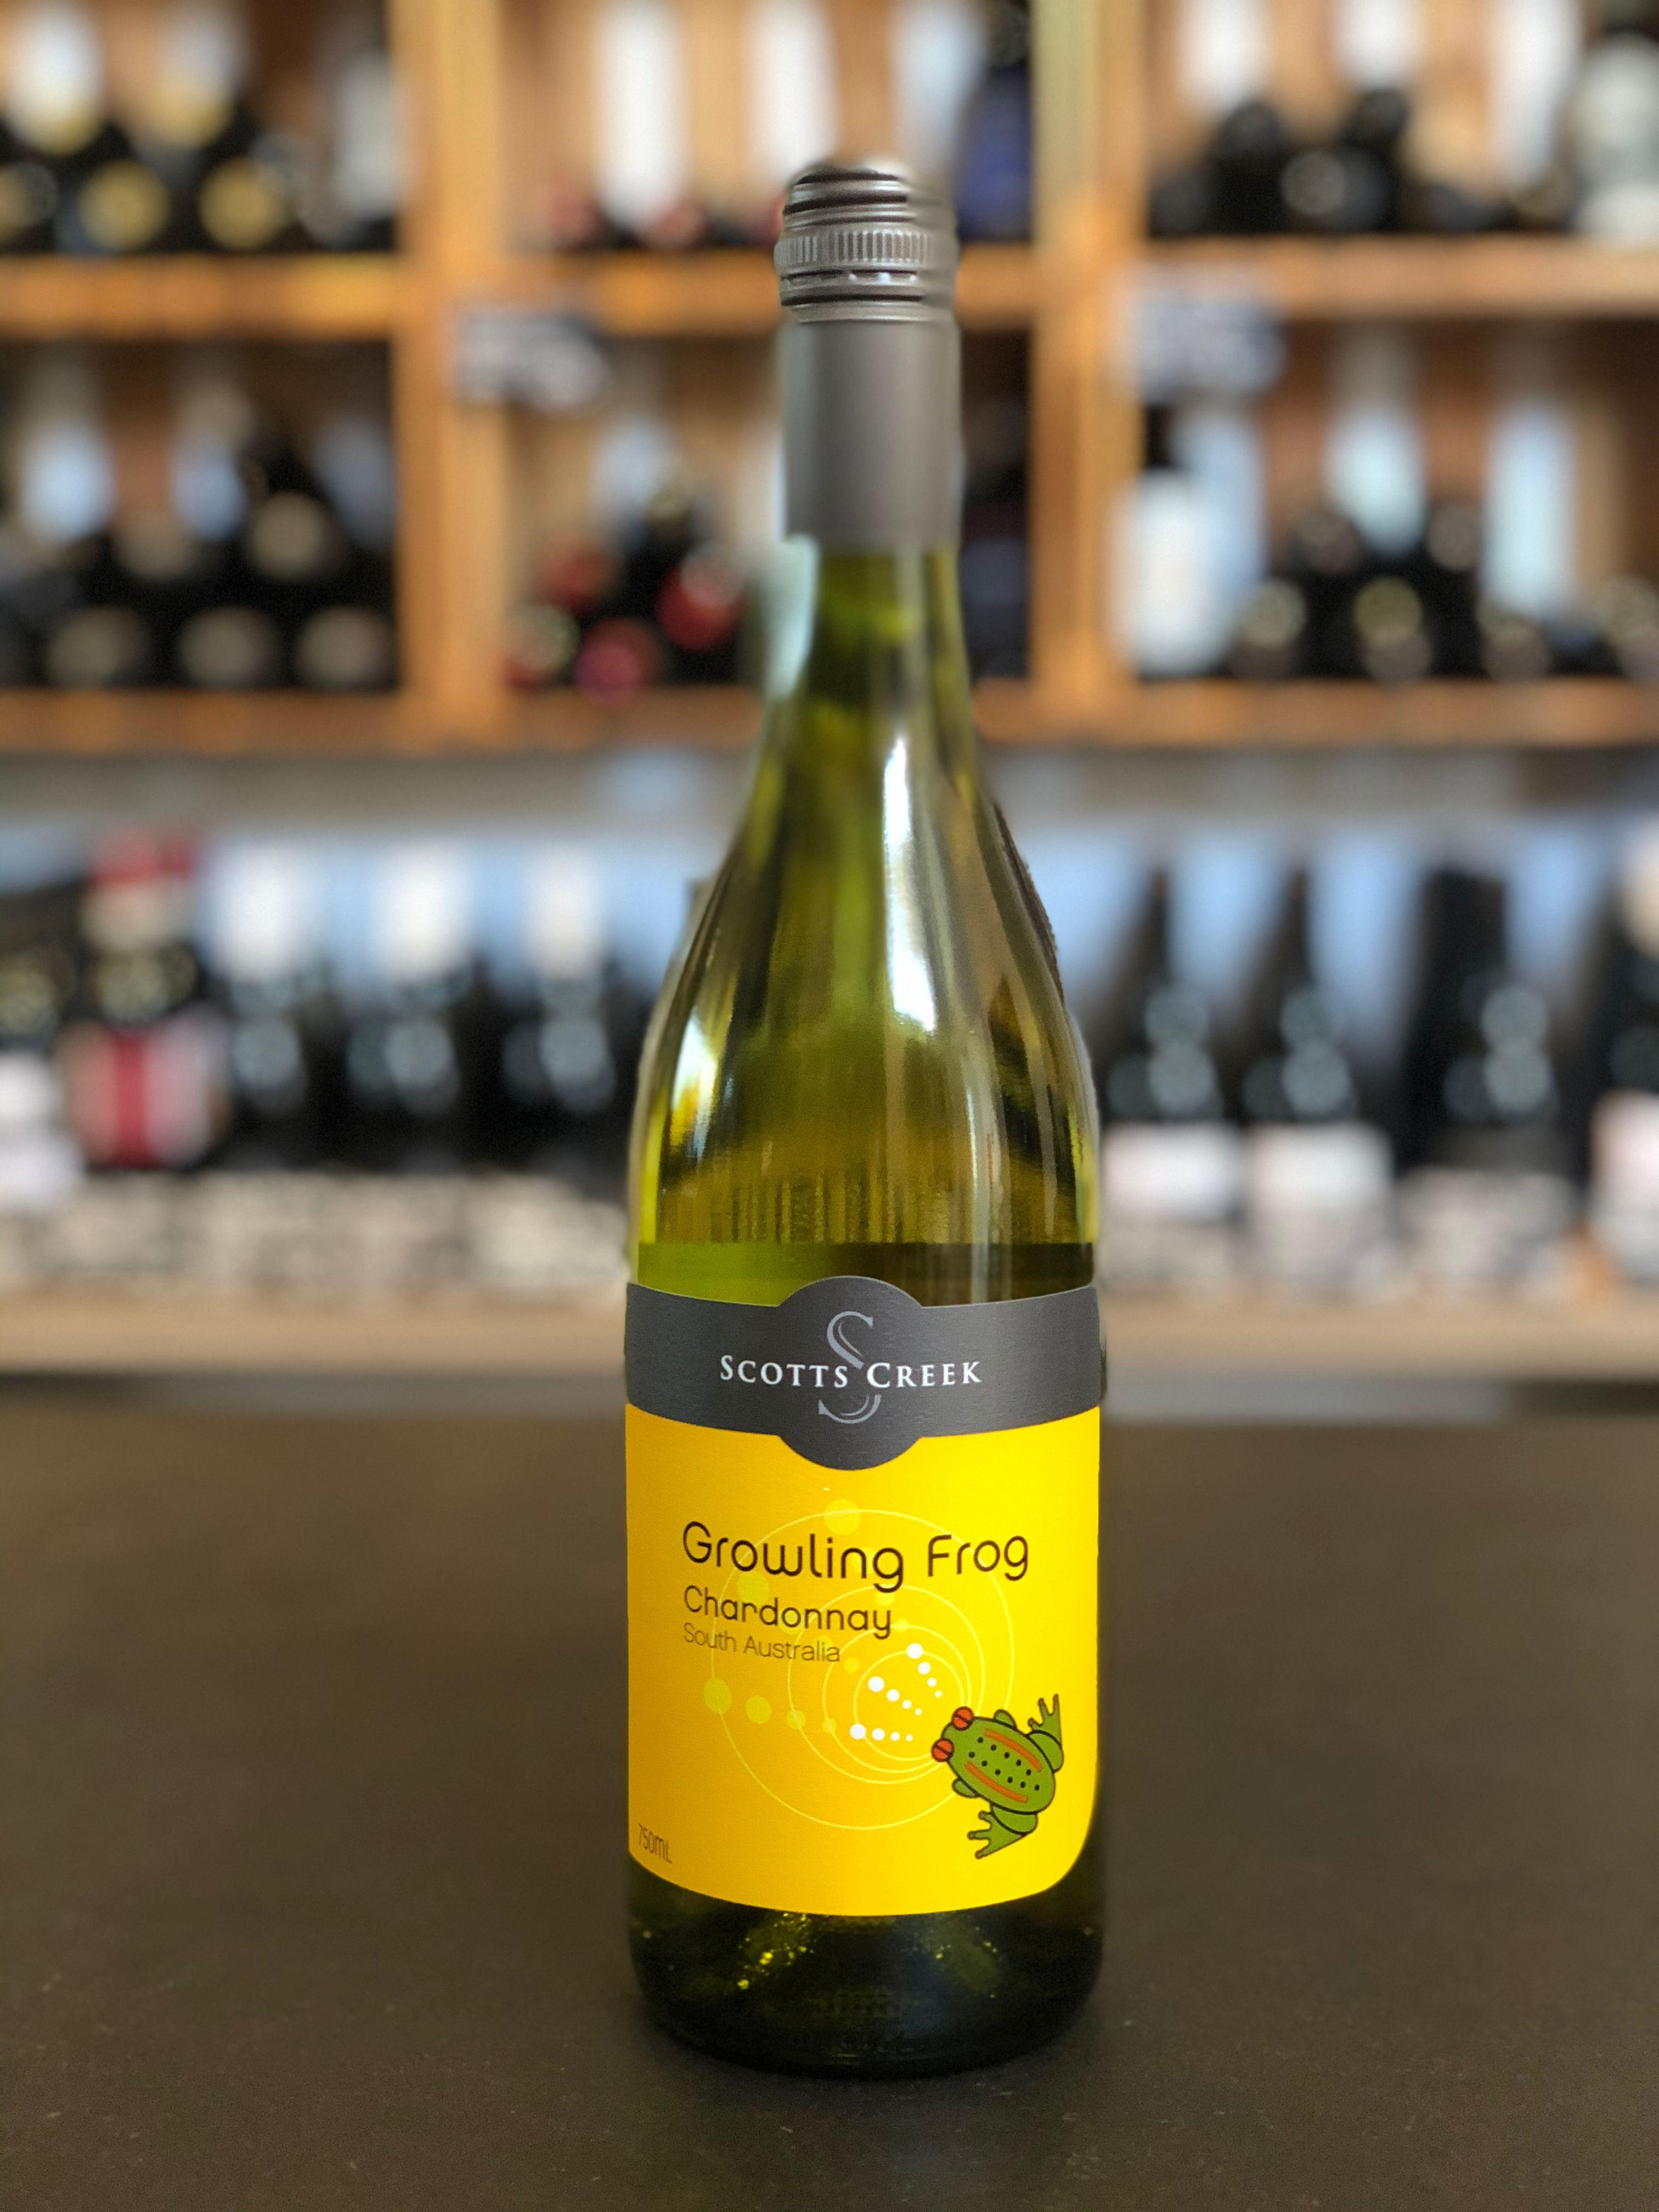 Scotts Creek Vineyards, Growling Frog, Chardonnay, 2018 - cooks&wines GmbH